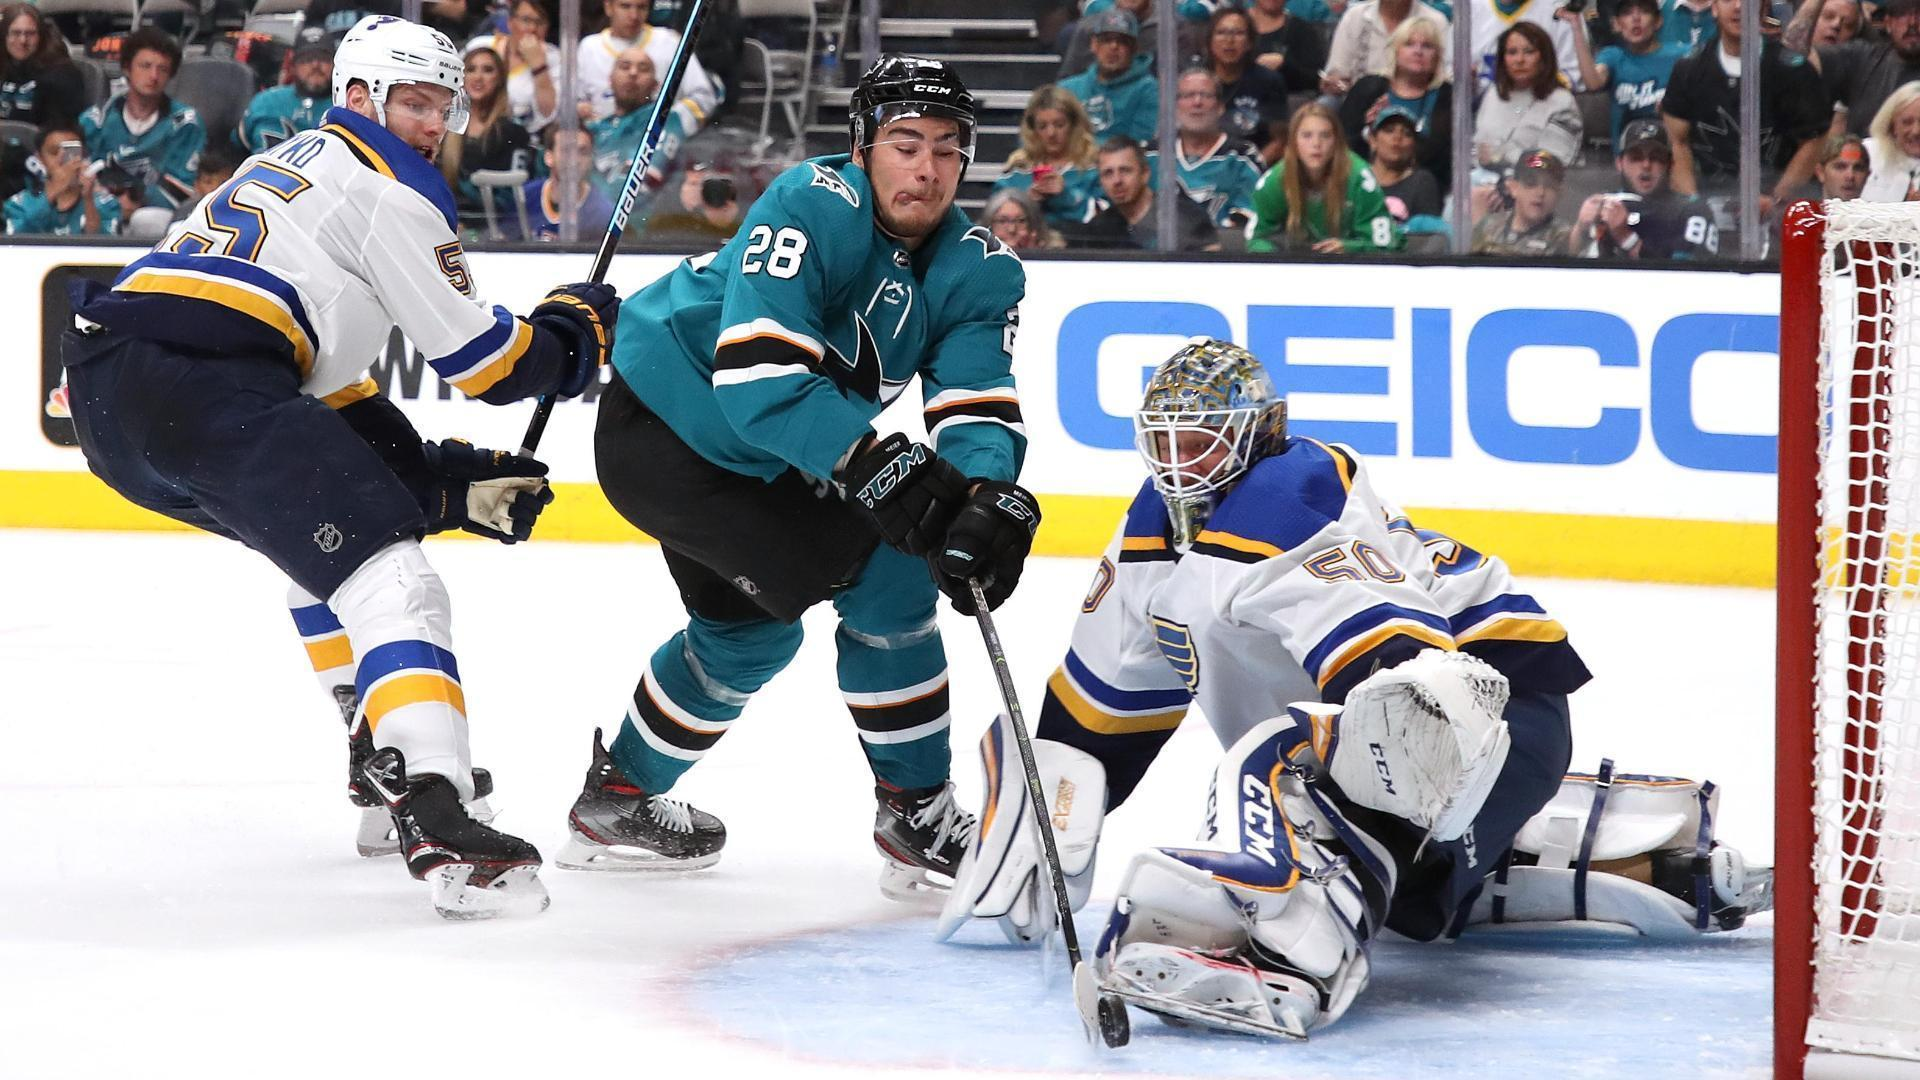 Meier scores two in Sharks' Game 1 win